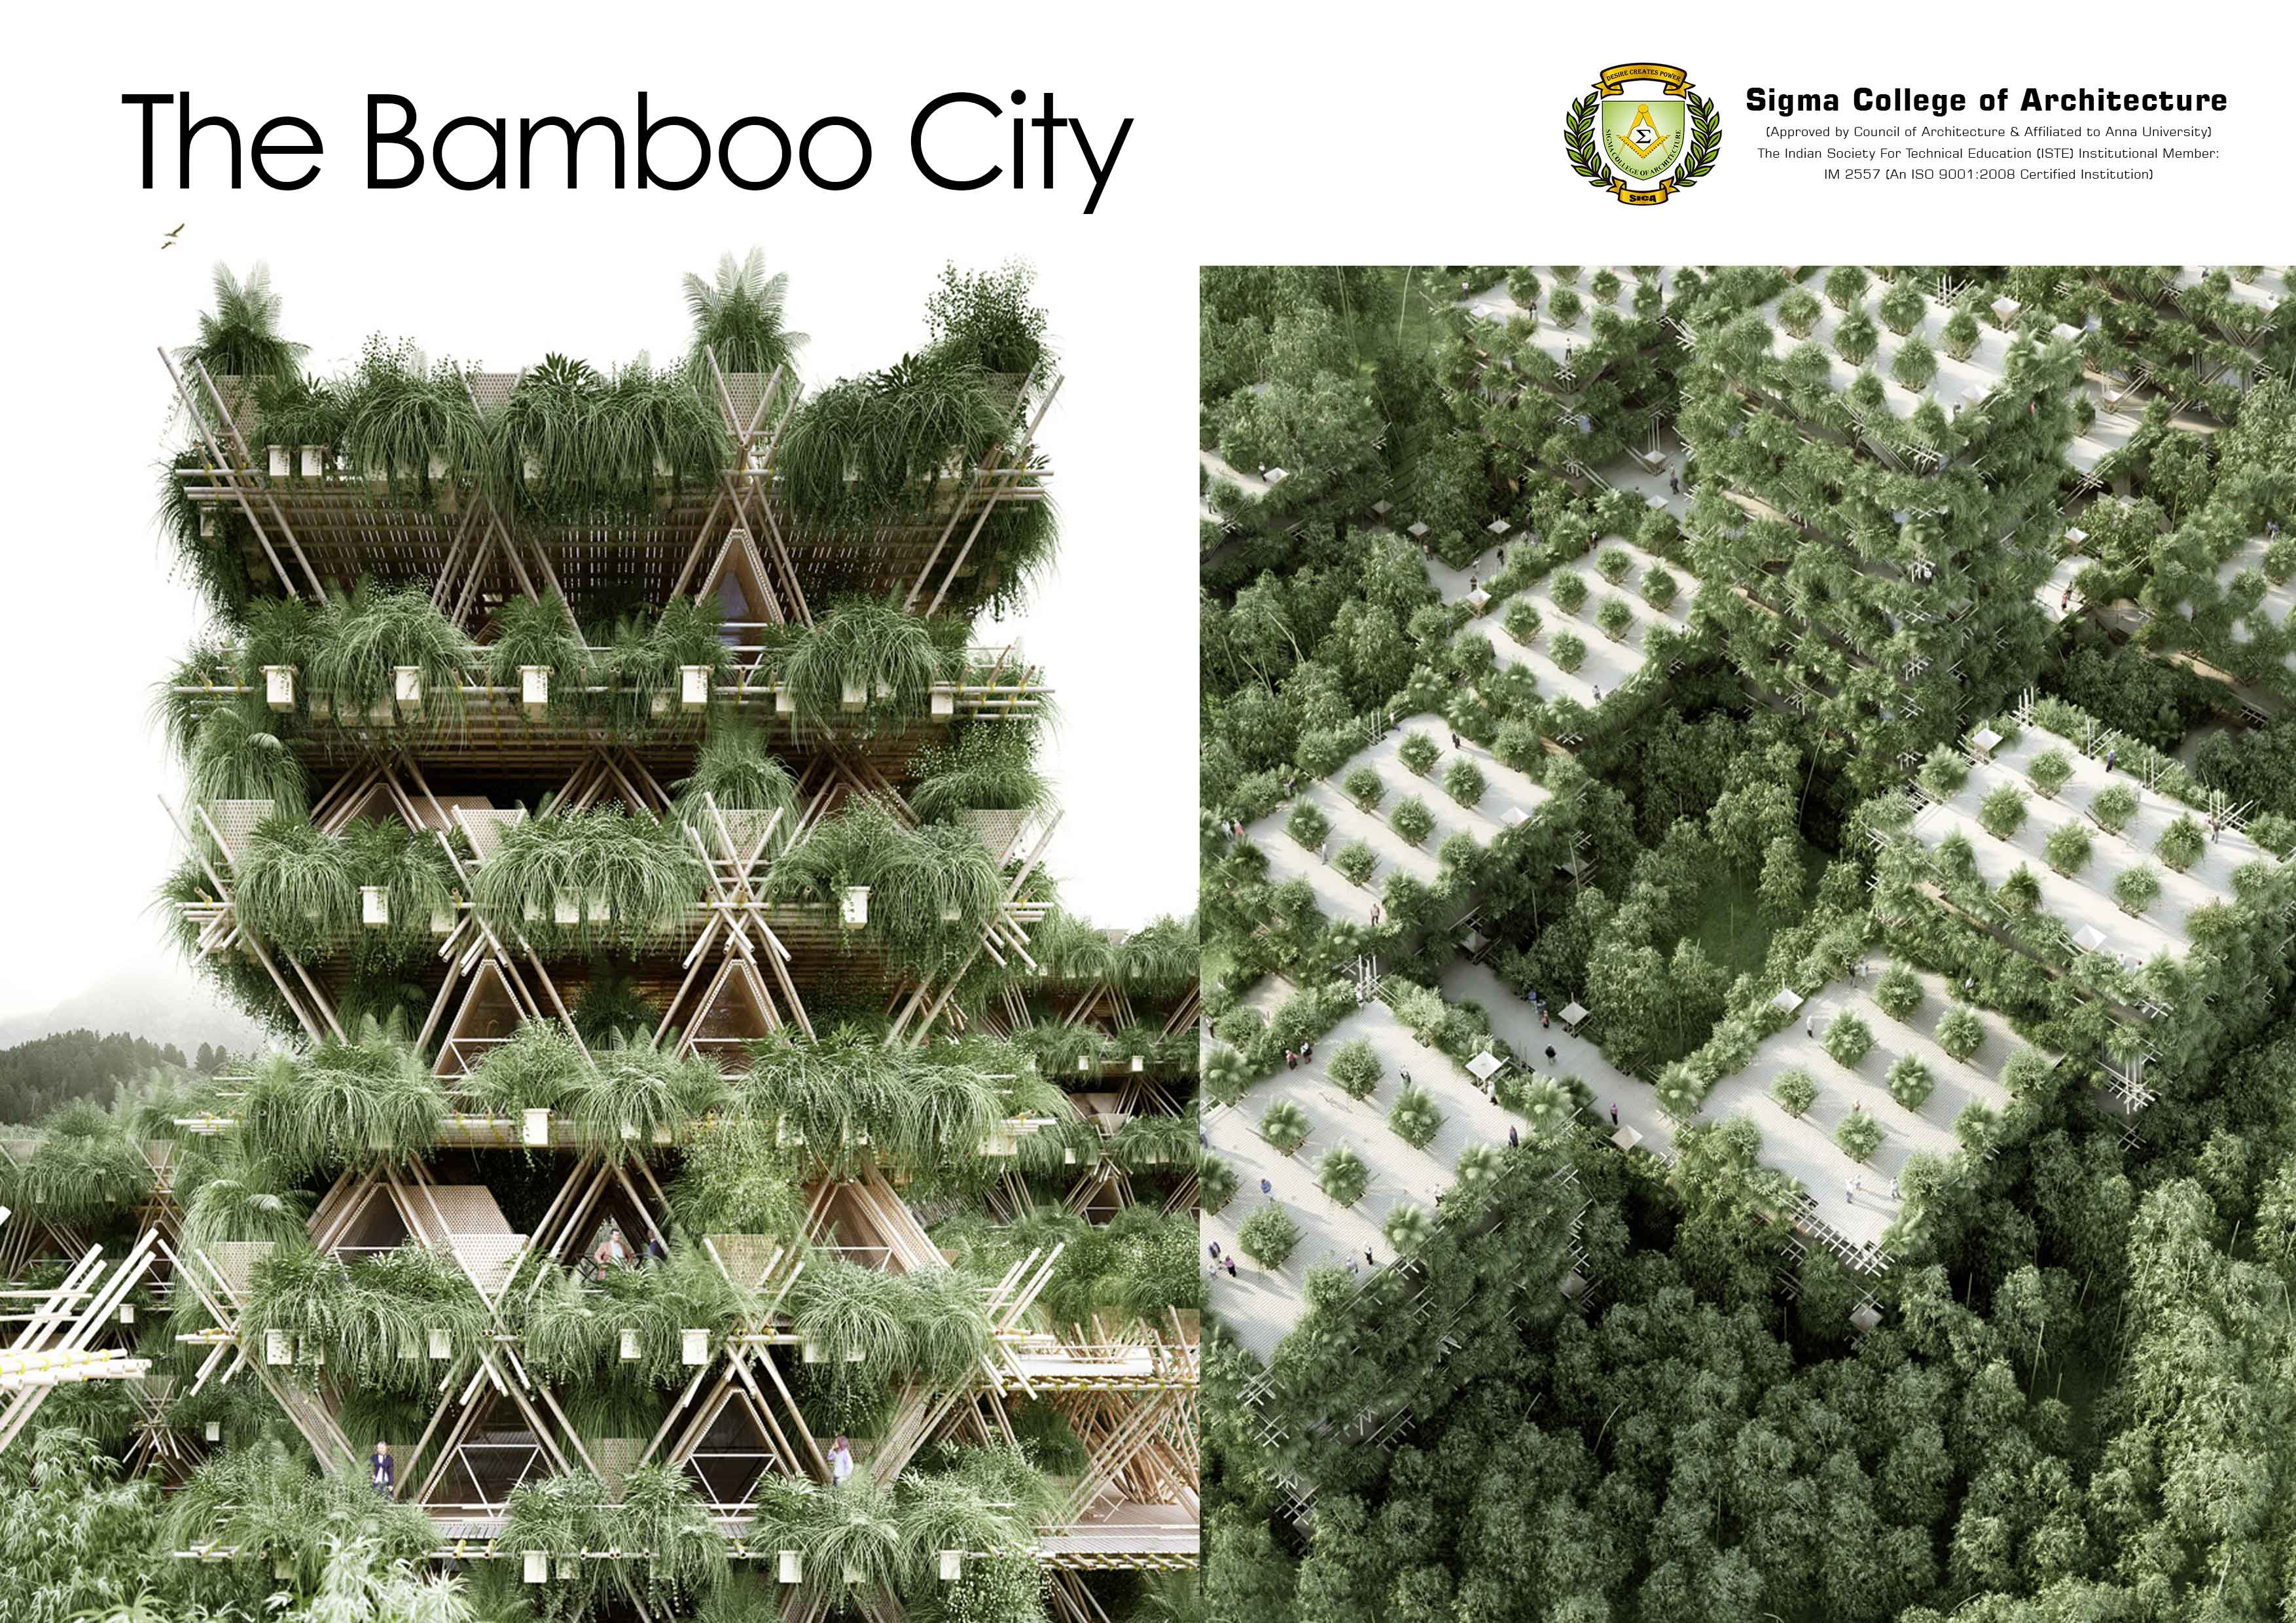 The Bamboo City